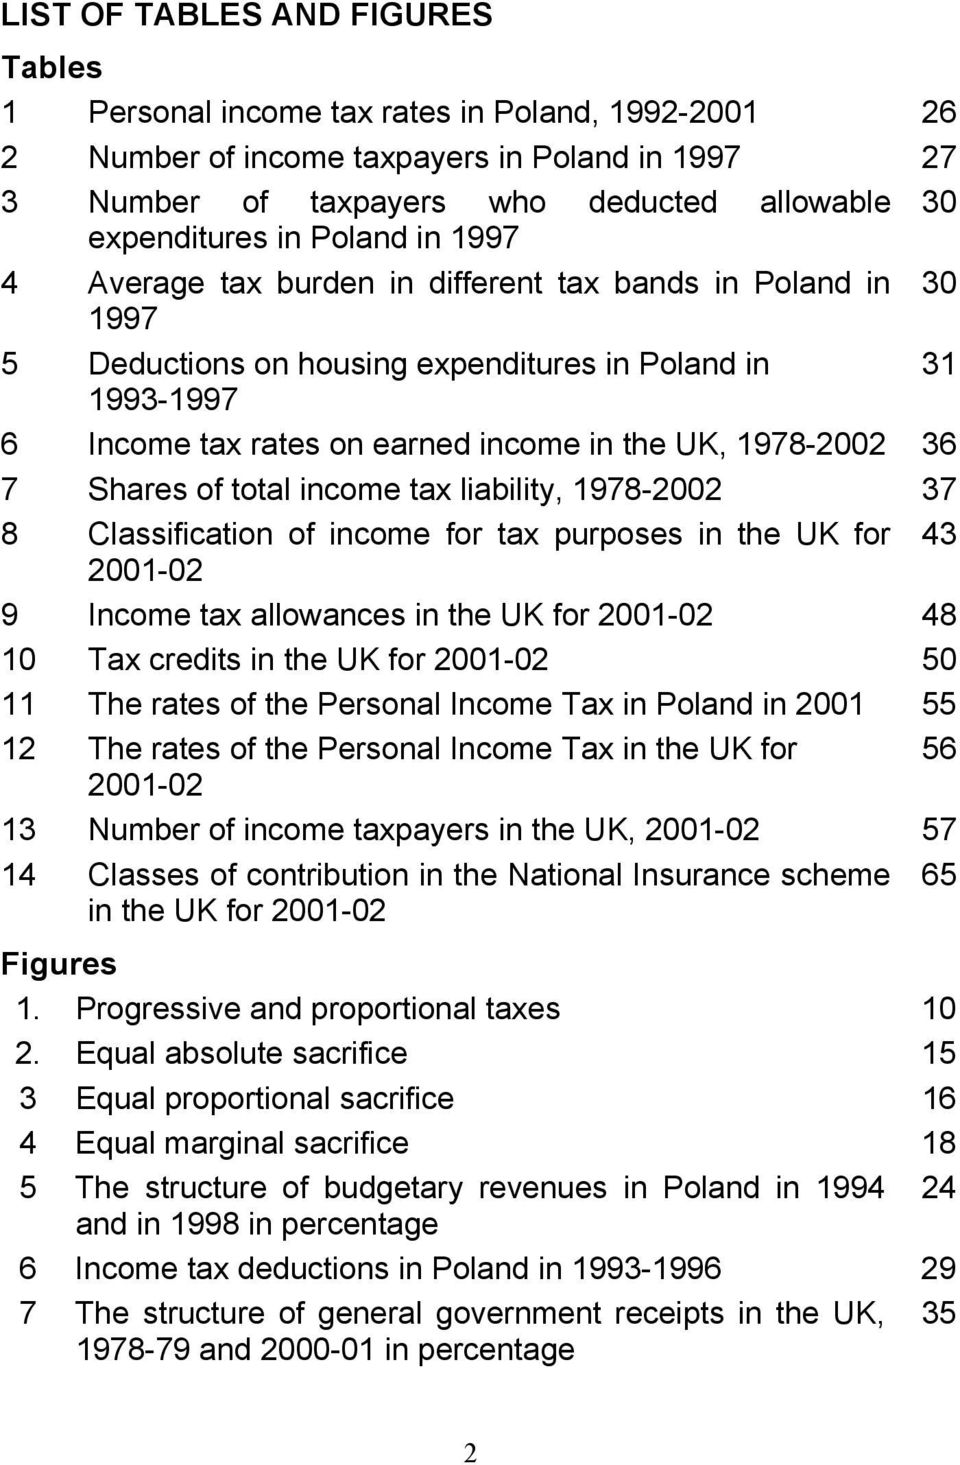 36 7 Shares of total income tax liability, 1978-2002 37 8 Classification of income for tax purposes in the UK for 43 2001-02 9 Income tax allowances in the UK for 2001-02 48 10 Tax credits in the UK